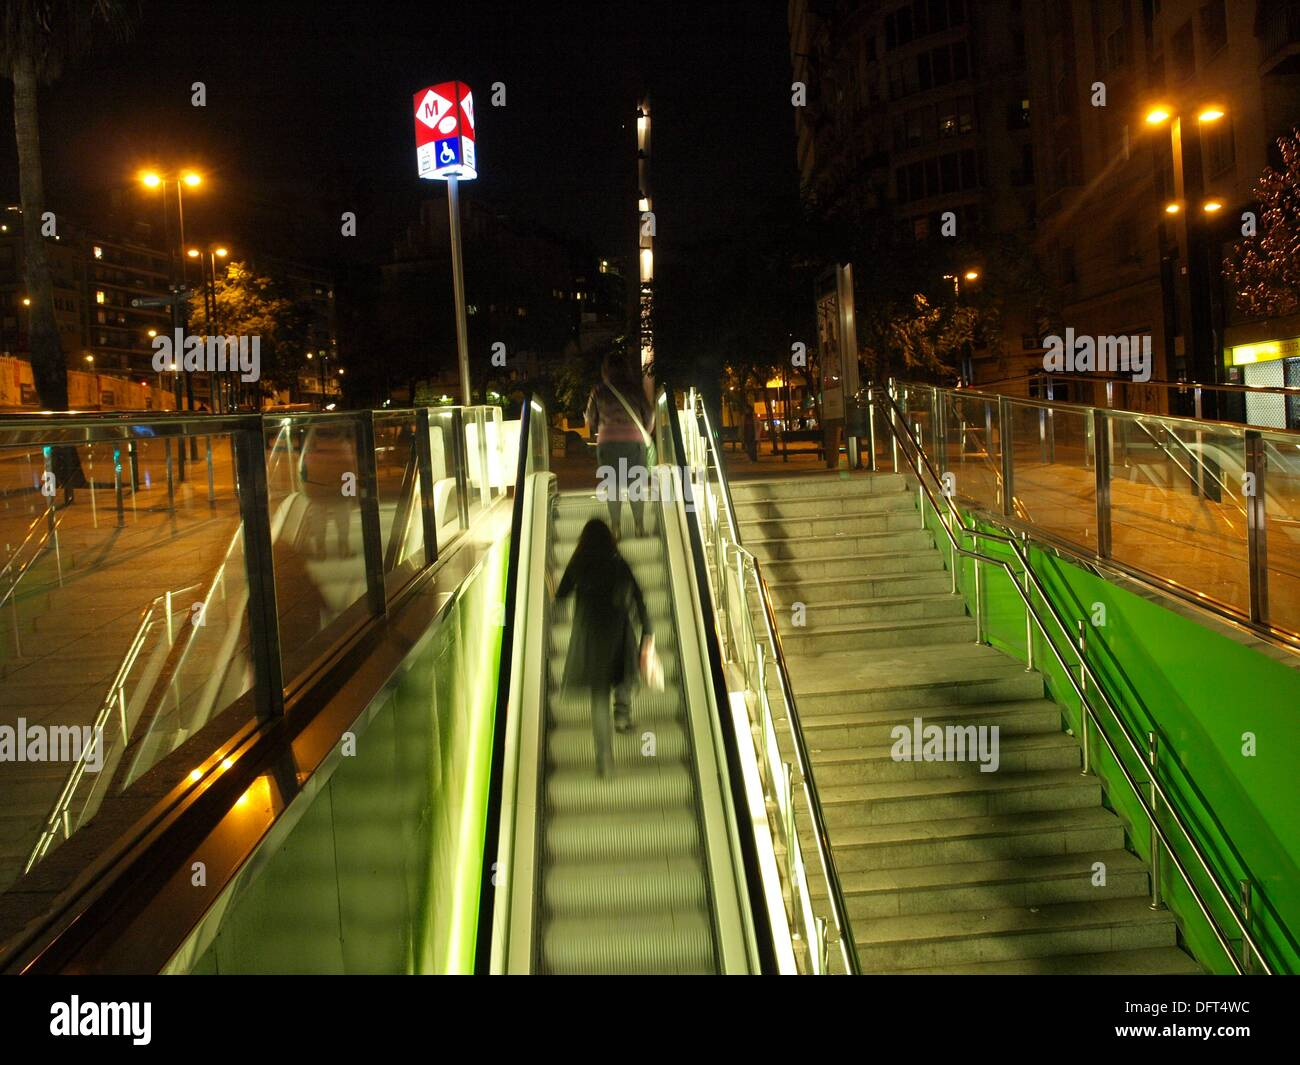 Woman carrying a white bag walking up the escalator of a tube stop at night, Plaça de Lesseps subway station (L3, green line), - Stock Image